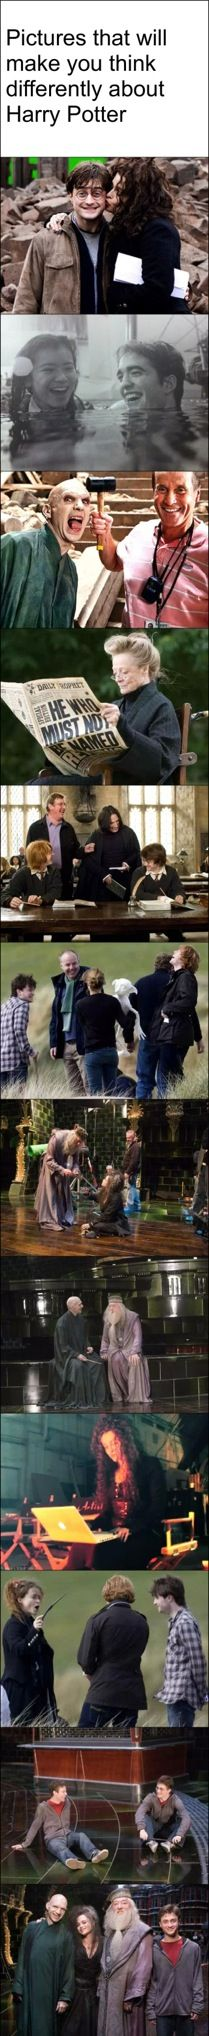 Harry Potter- Oh how my geekery loves this!